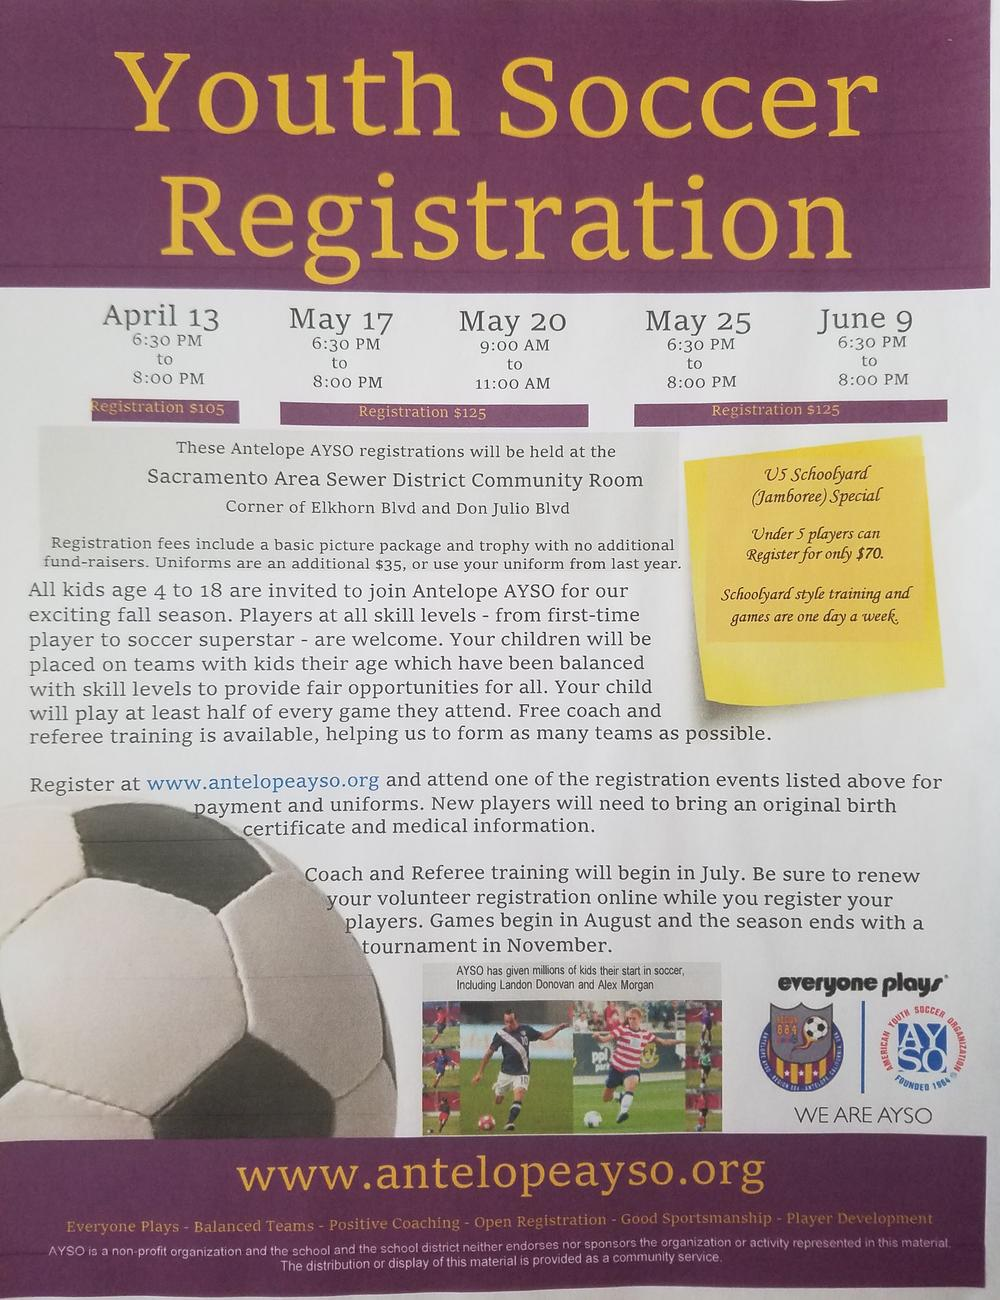 AYSO Youth Soccer Registration Flyer